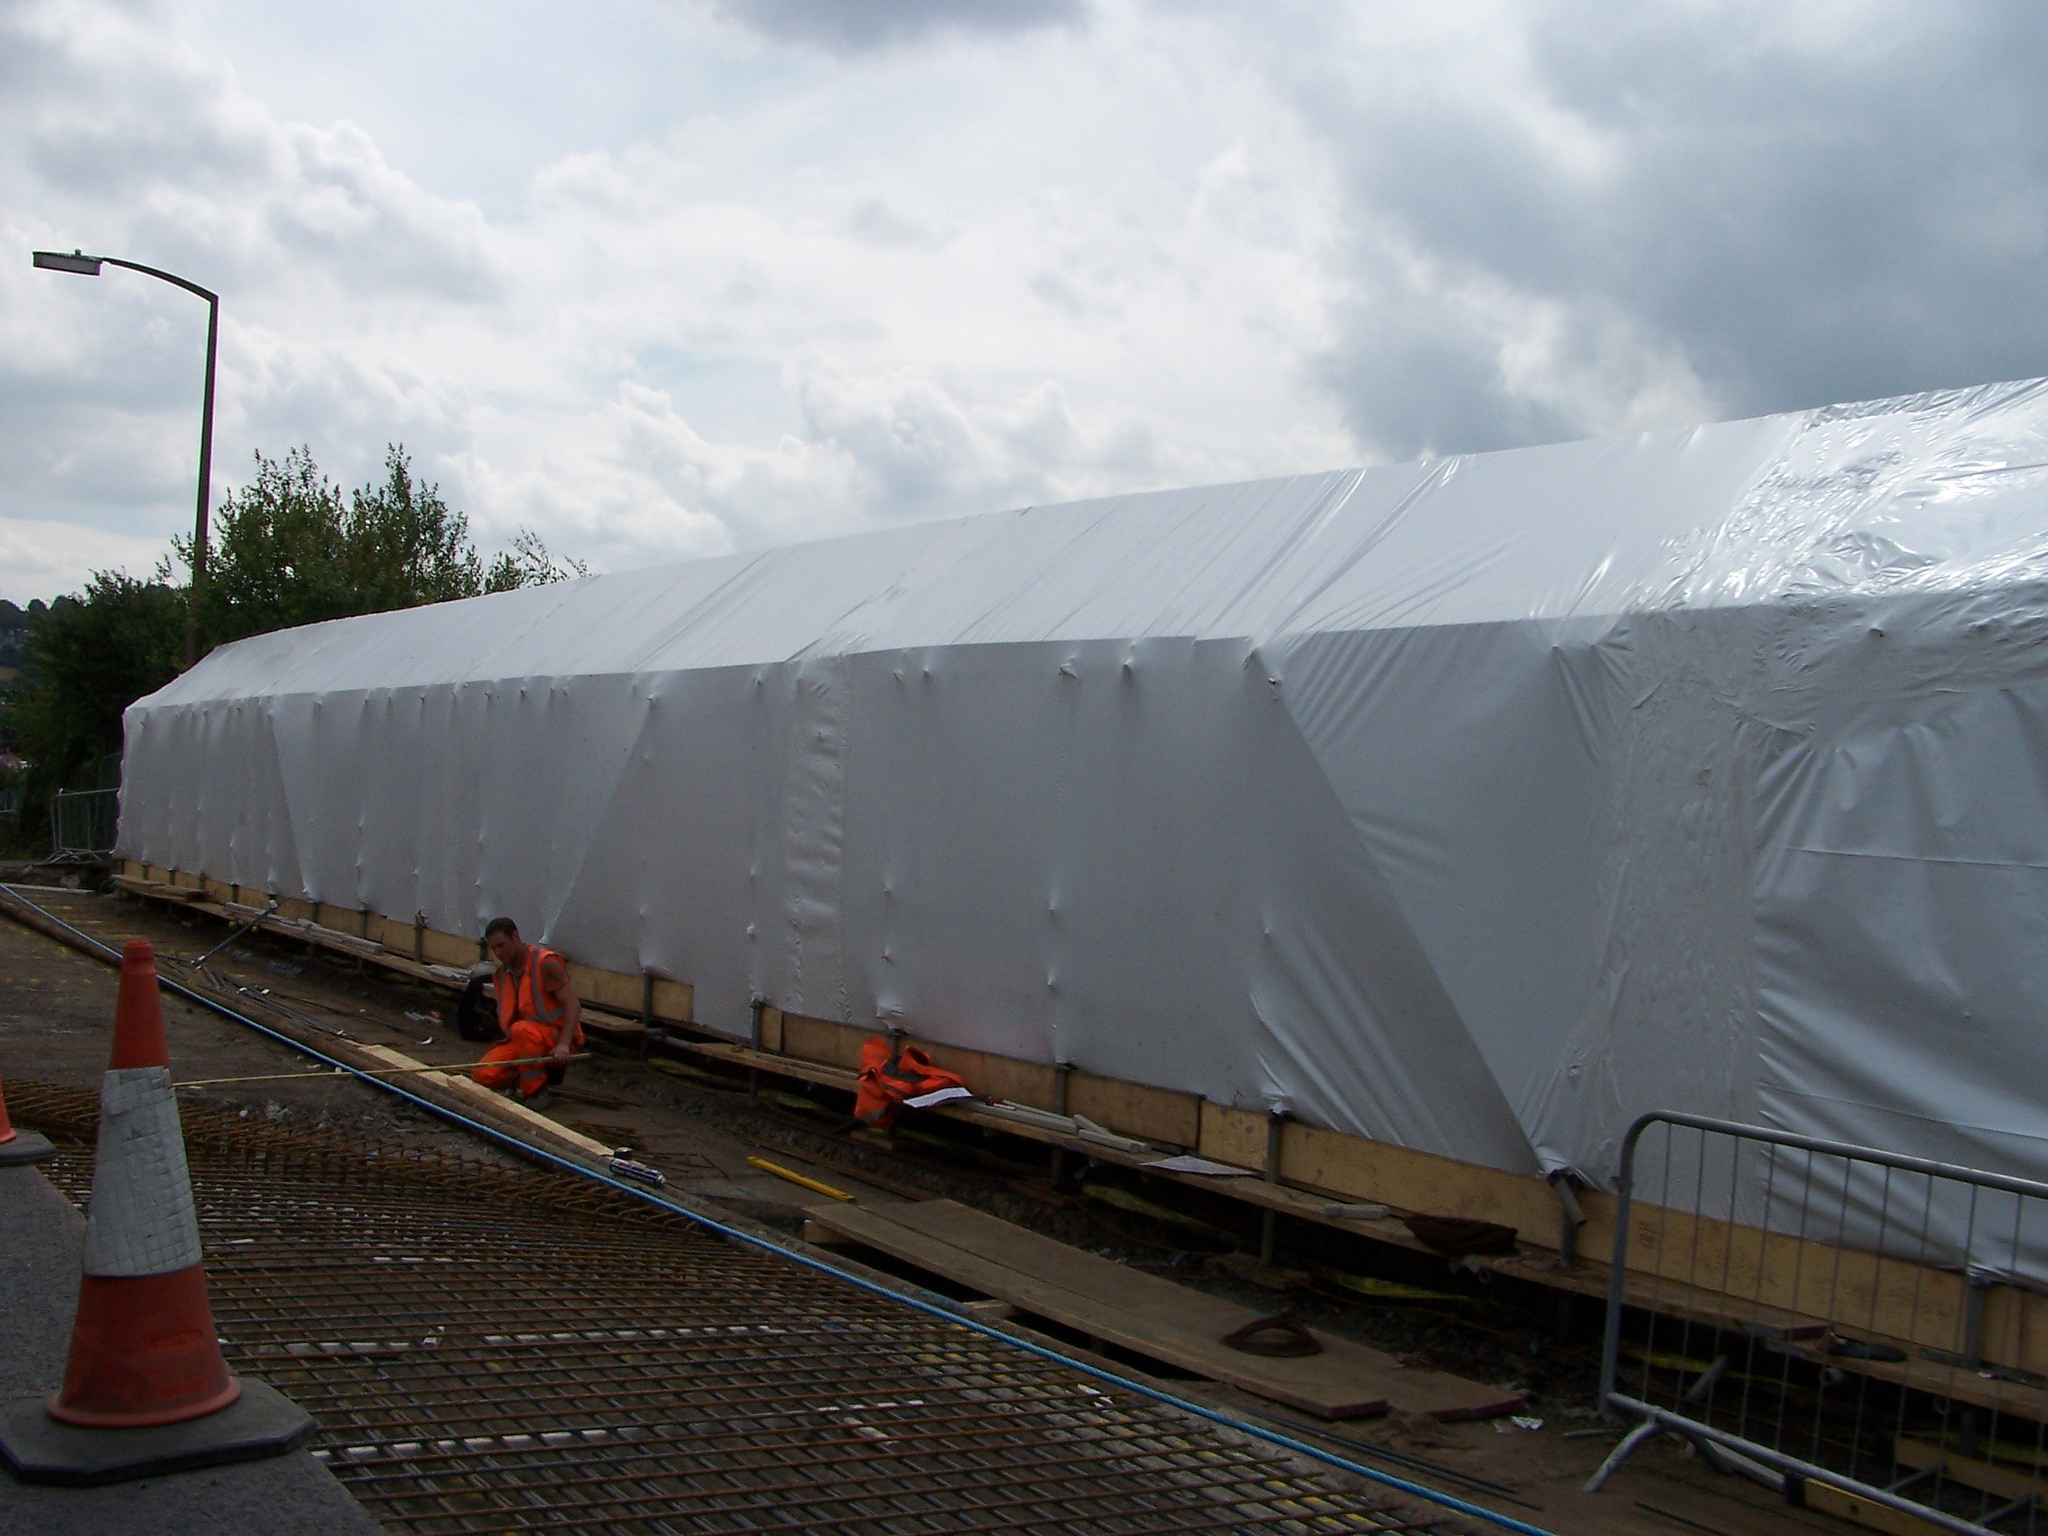 Containment Sheeting Covering Bridge Scaffolding